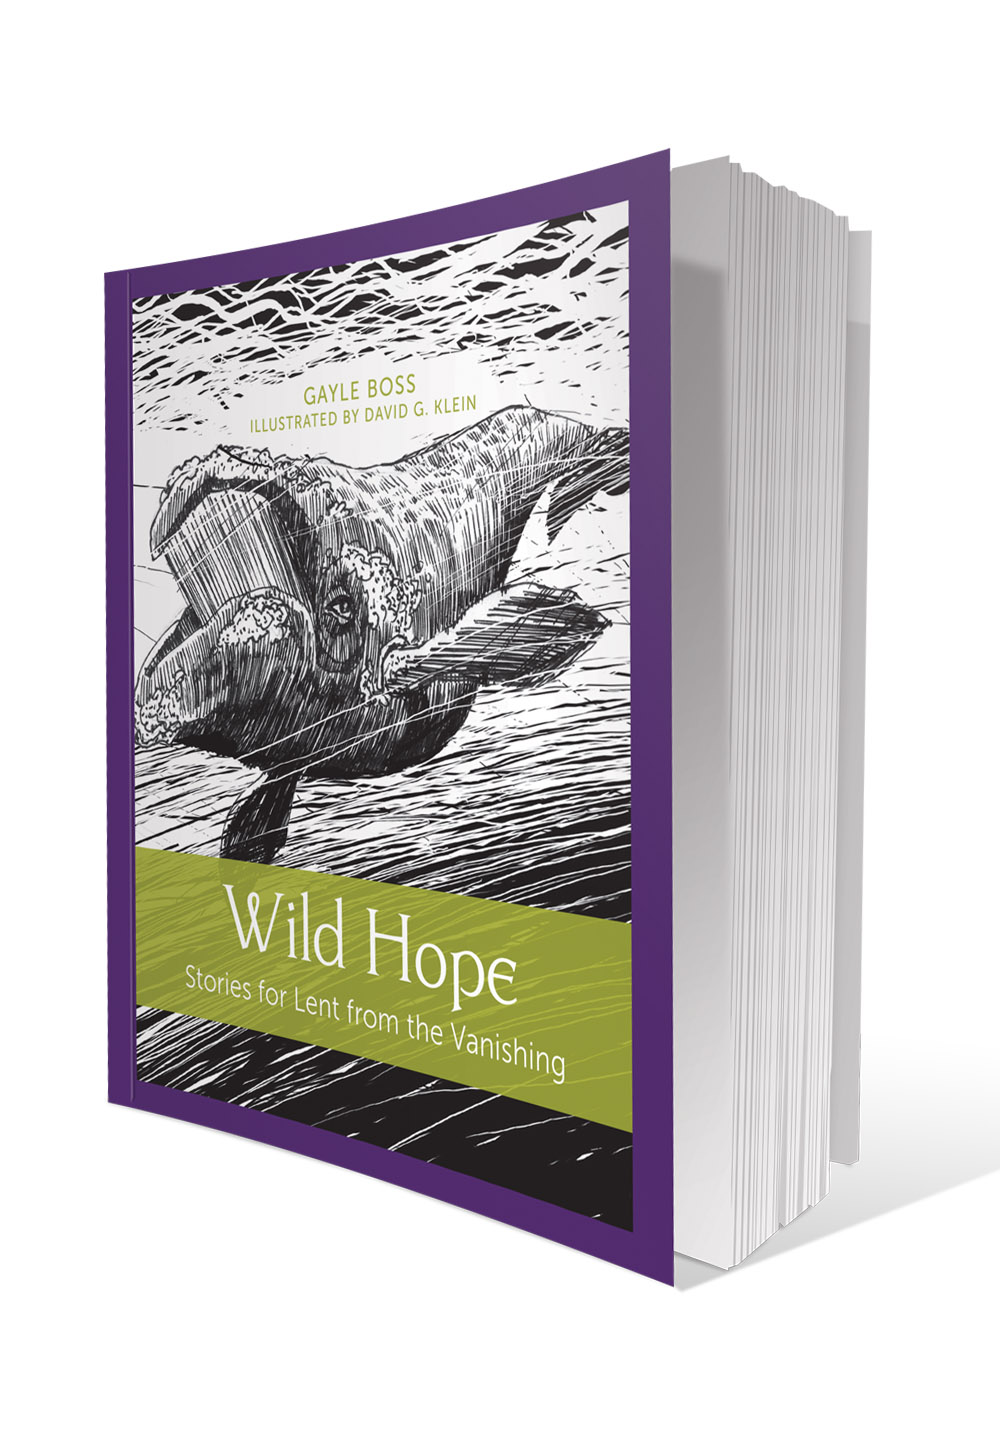 Wild Hope: Stories for Lent from the Vanishing by Gayle Boss, Illustrated by David G. Klein; Paraclete Press